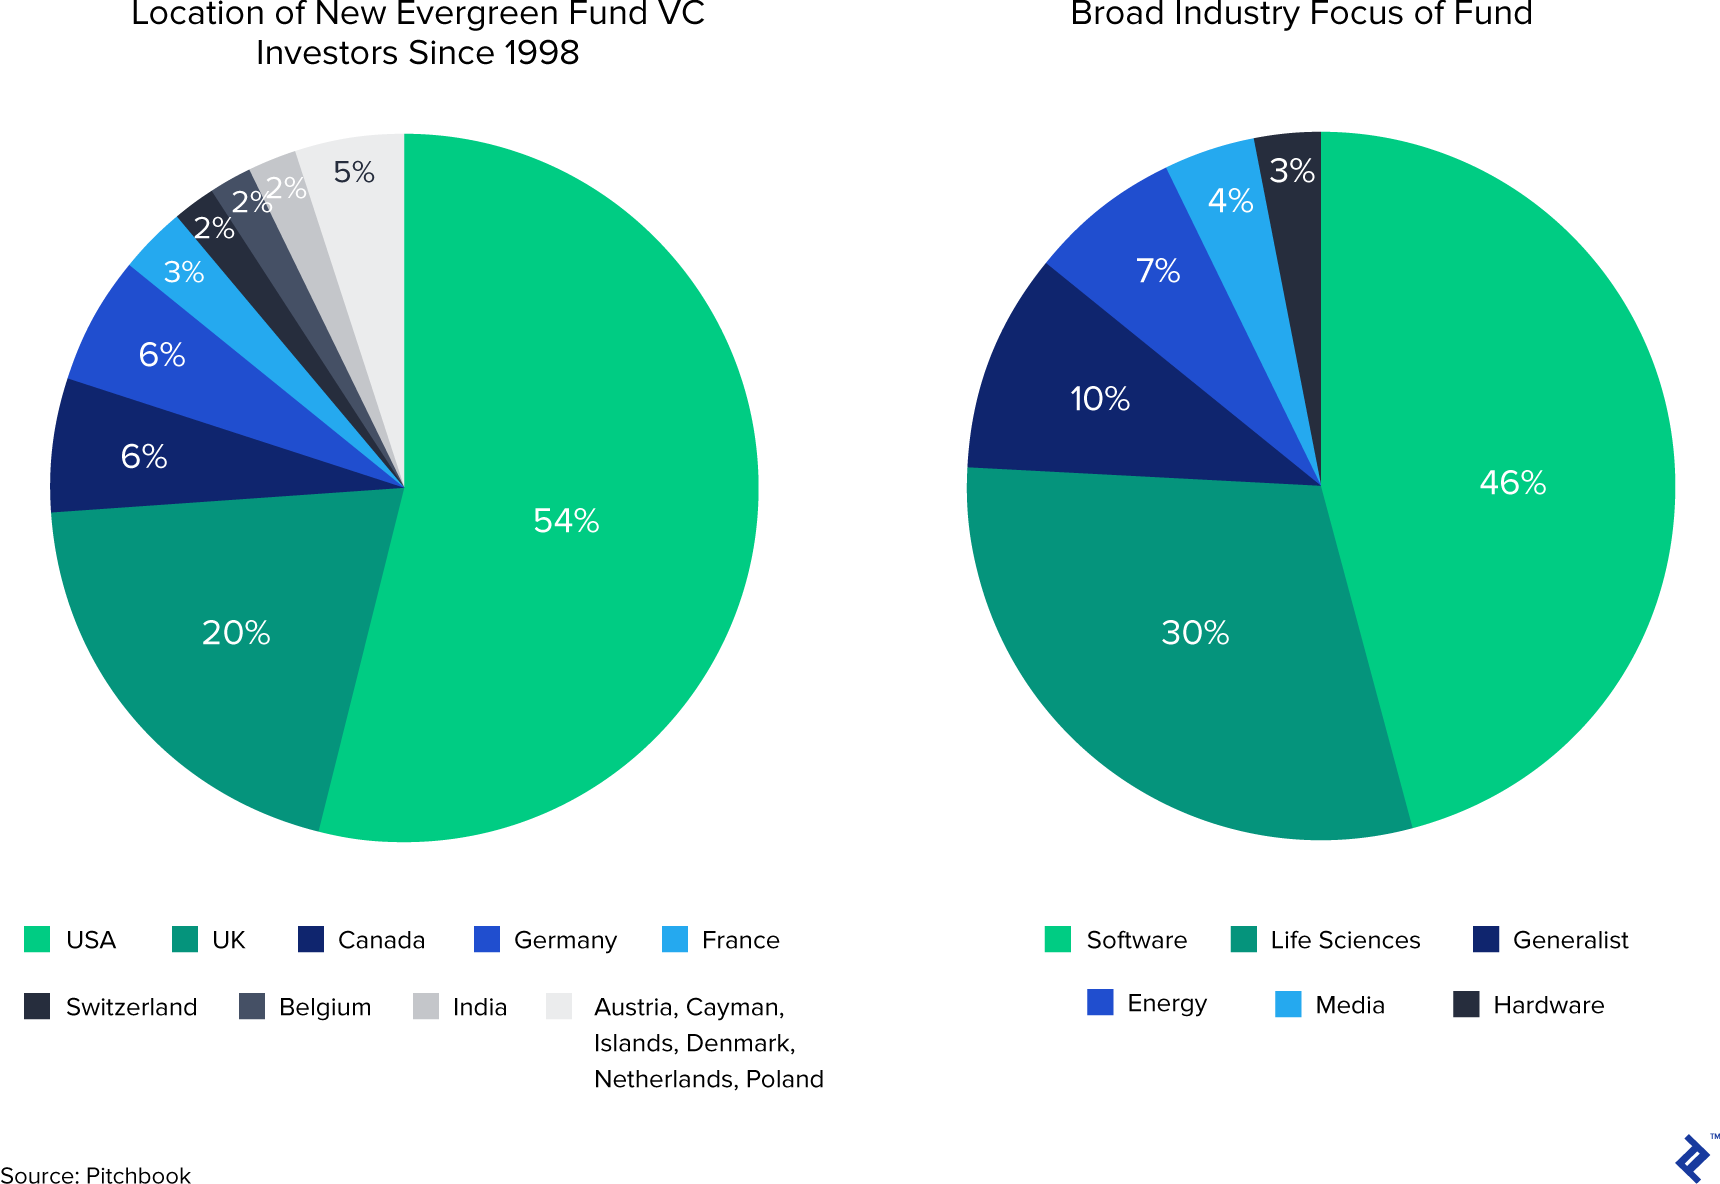 Location of new evergreen fund VC investors since 1998, and broad industry focus of fund